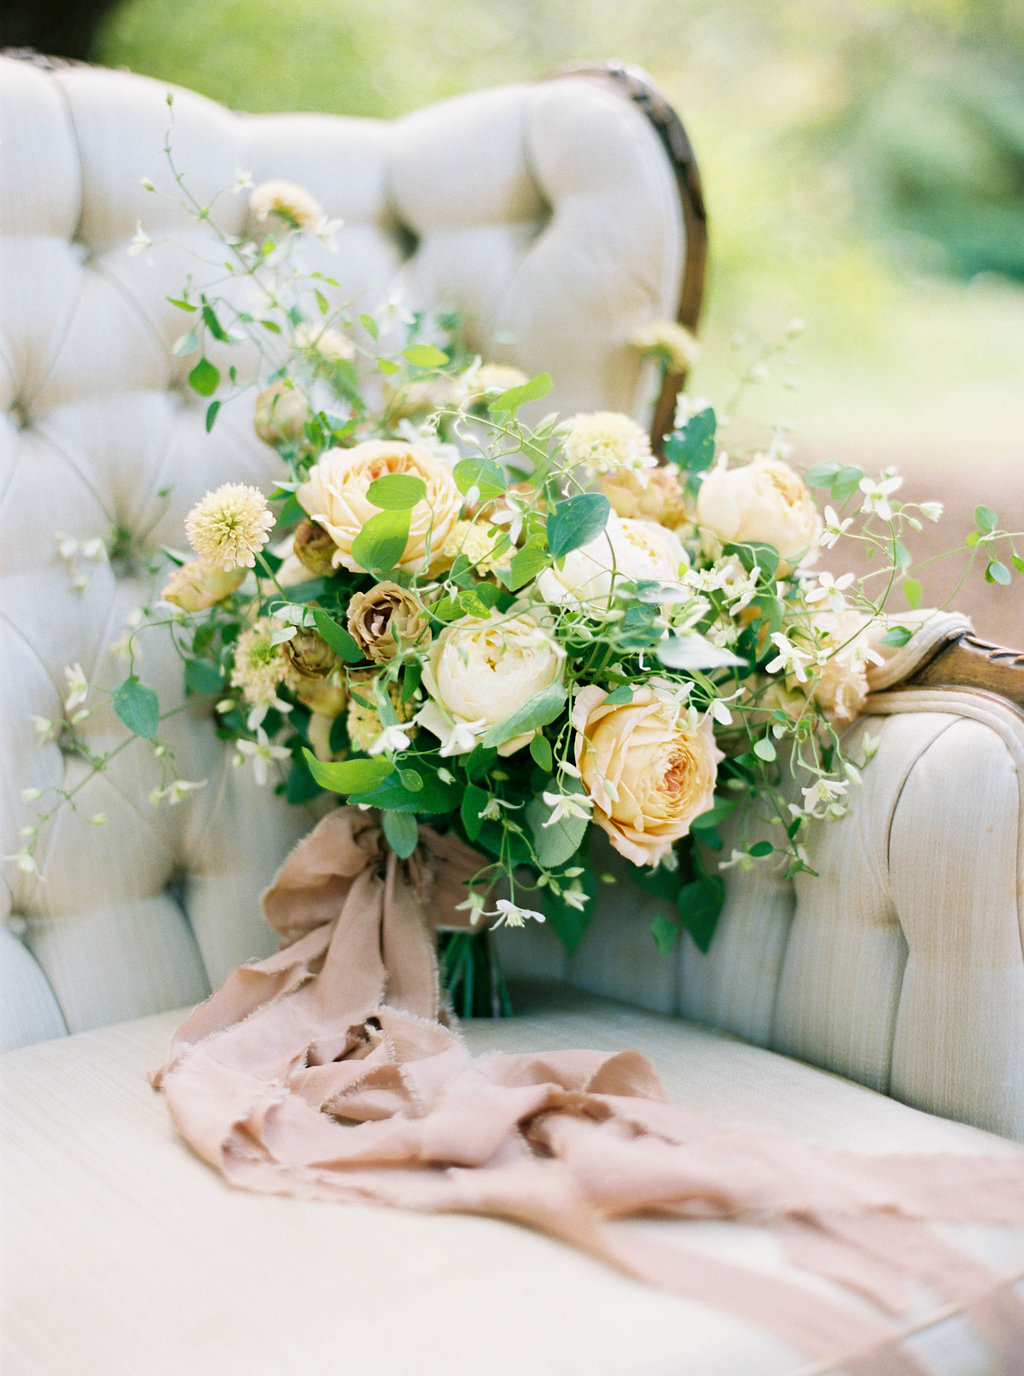 Wedding Wise, Seattle Wedding Planner | 2017 Pantone Color of the Year, Greenery | Sarah Carpenter Photography | Neutral bridal bouquet by Wild Bloom Floral